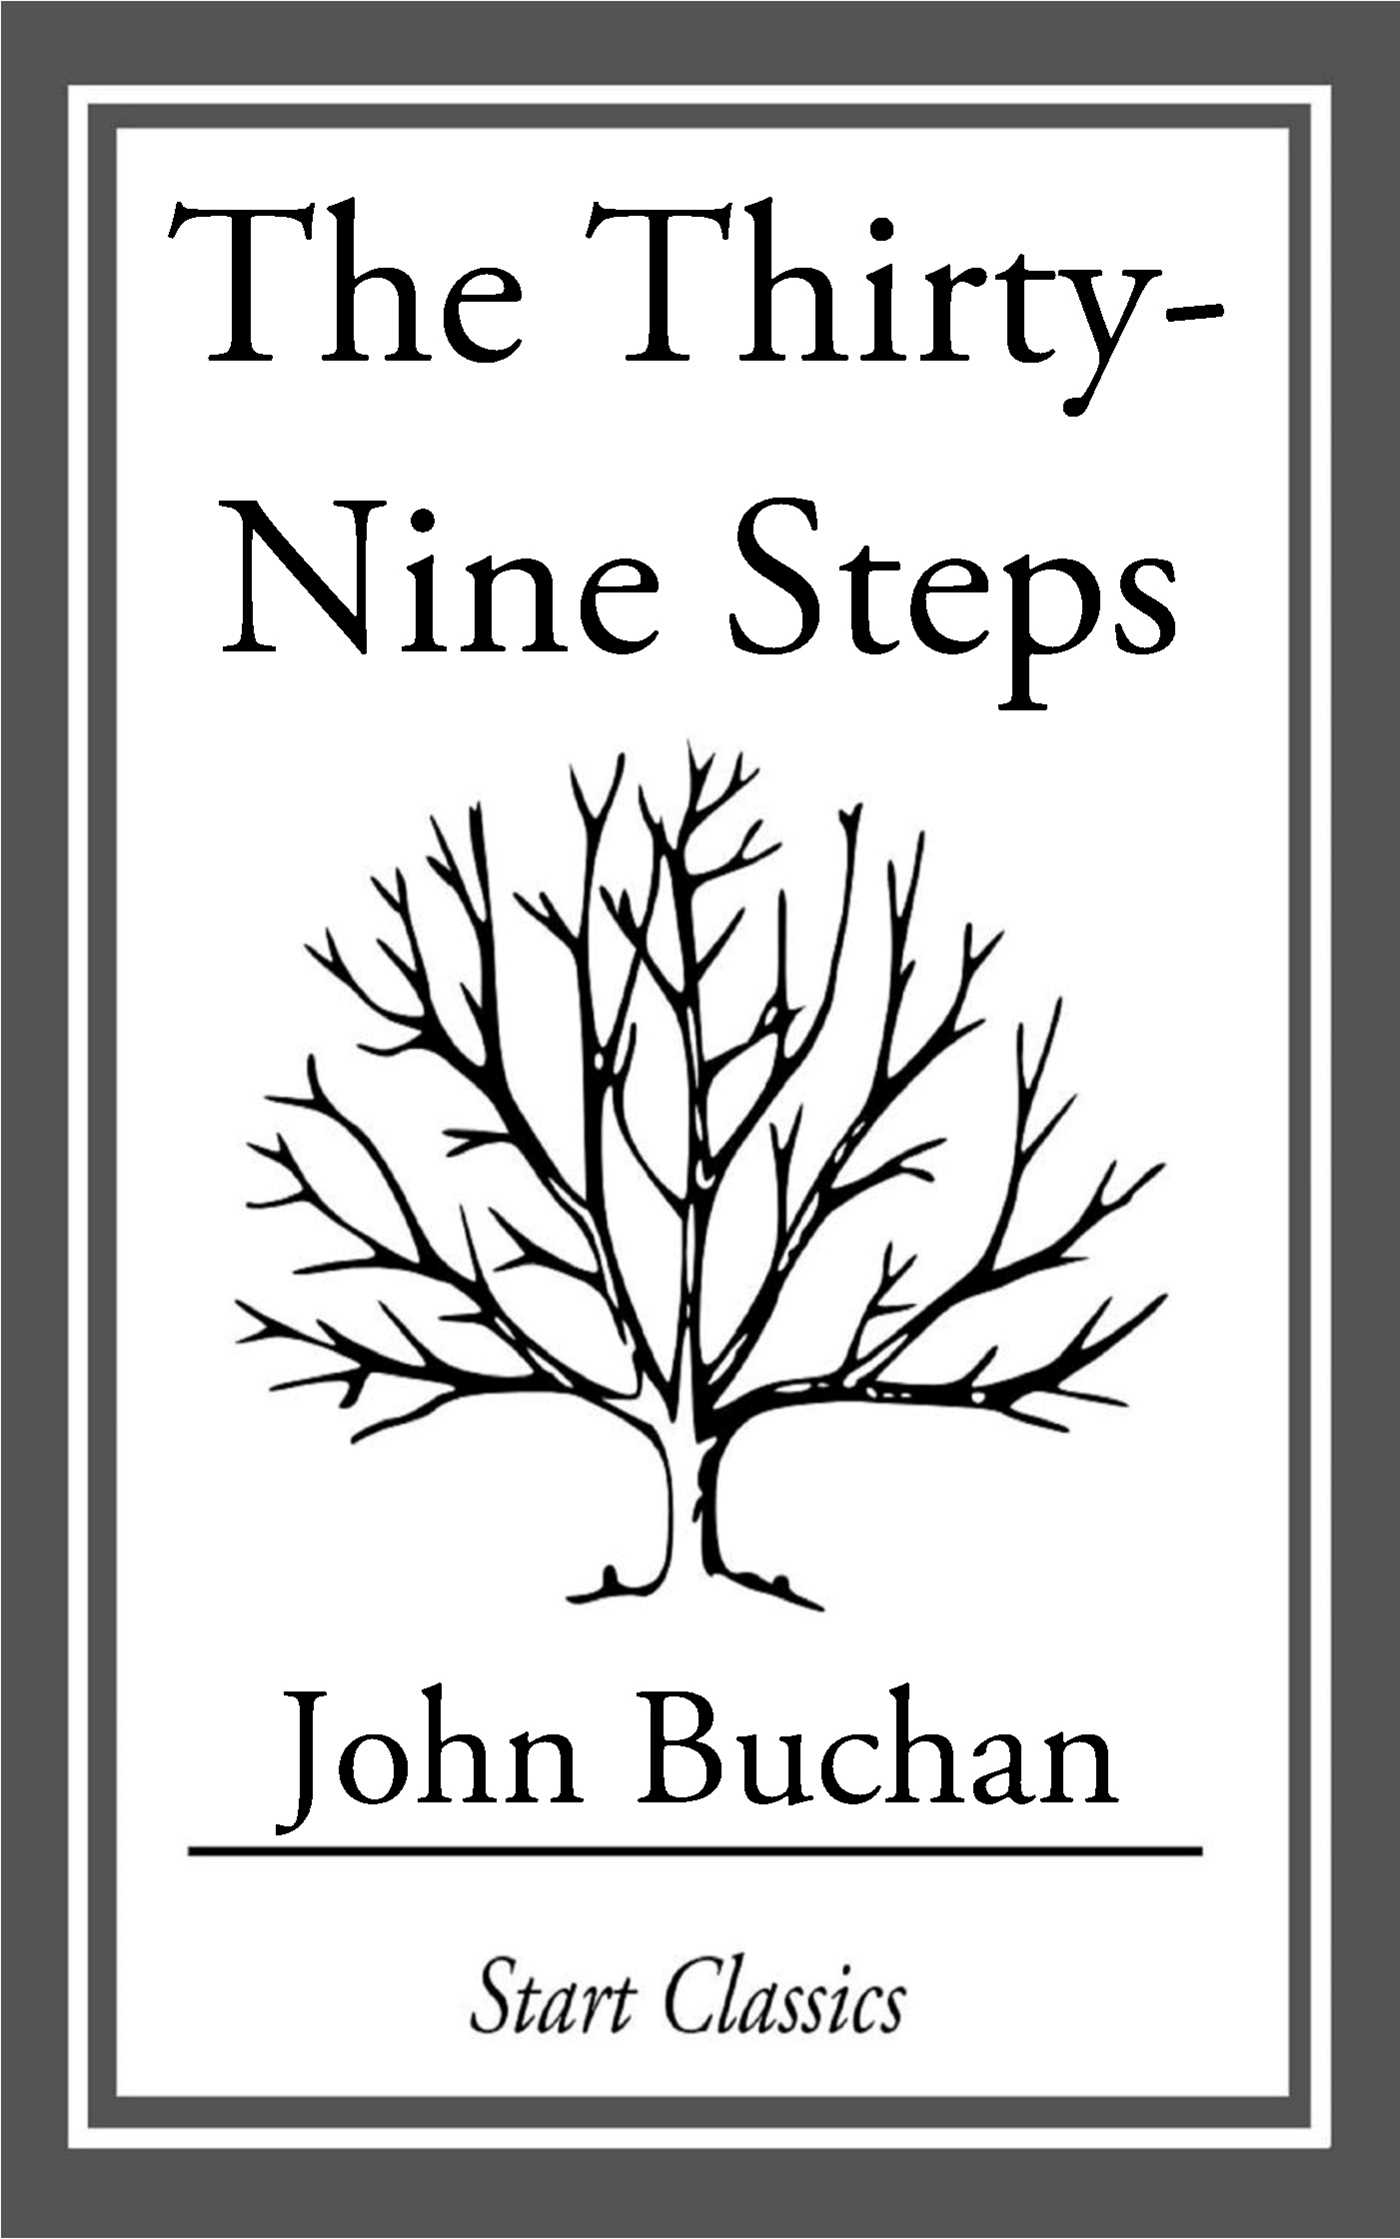 The thirty nine steps 9781633550681 hr